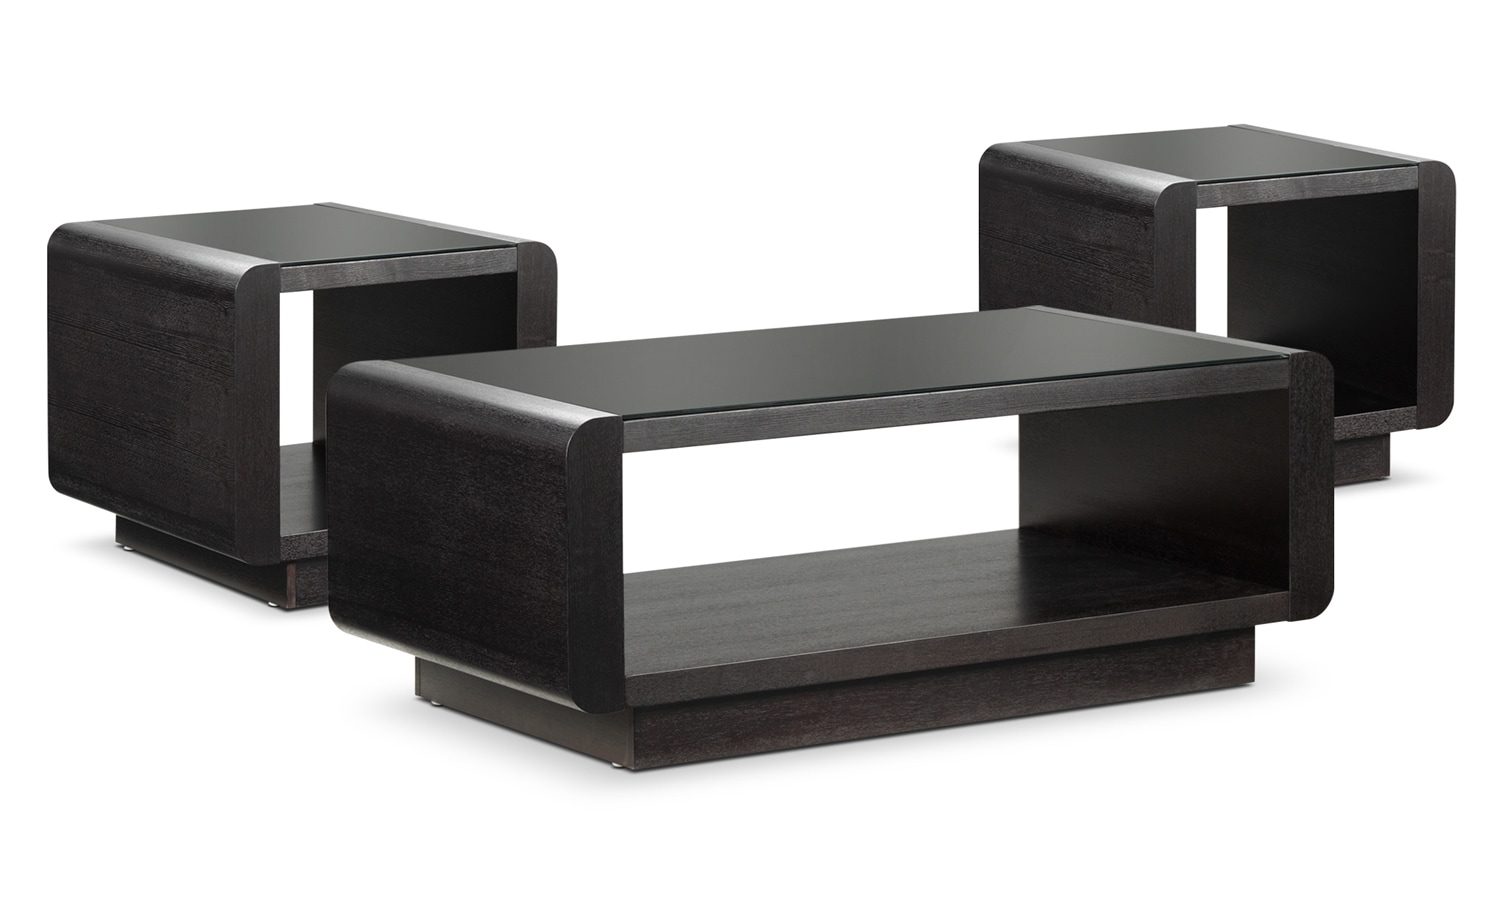 Park Avenue Coffee Table and Two End Tables - Espresso